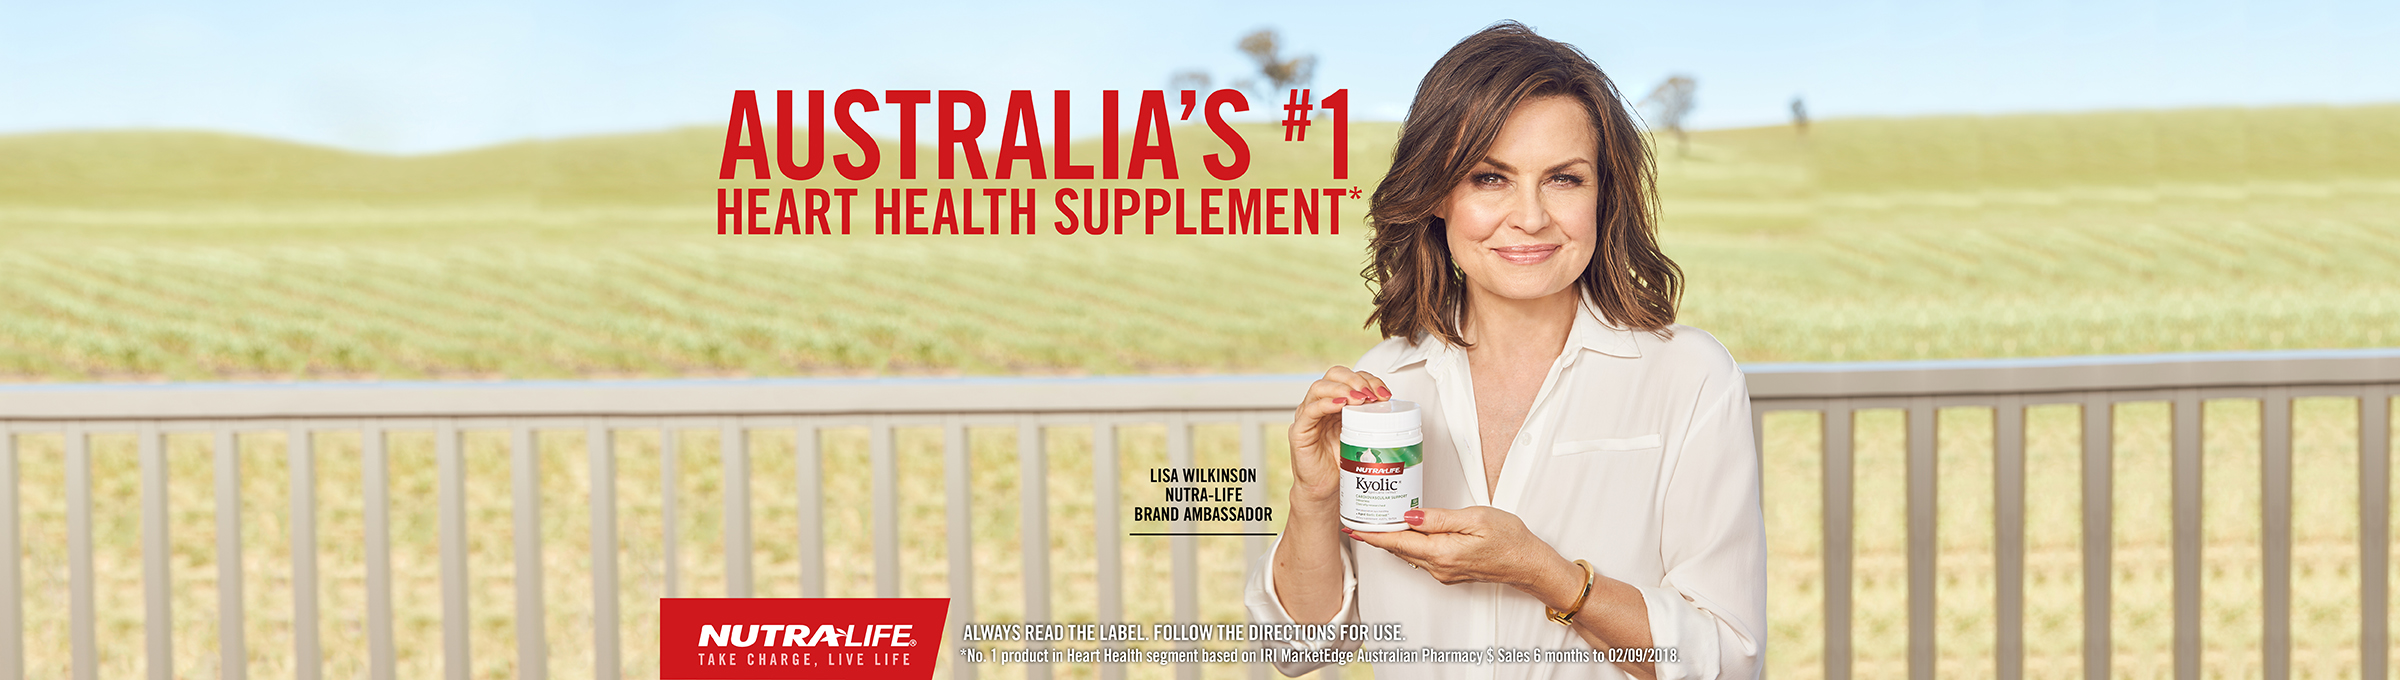 australias-number-1-heart-supplement-large-banner